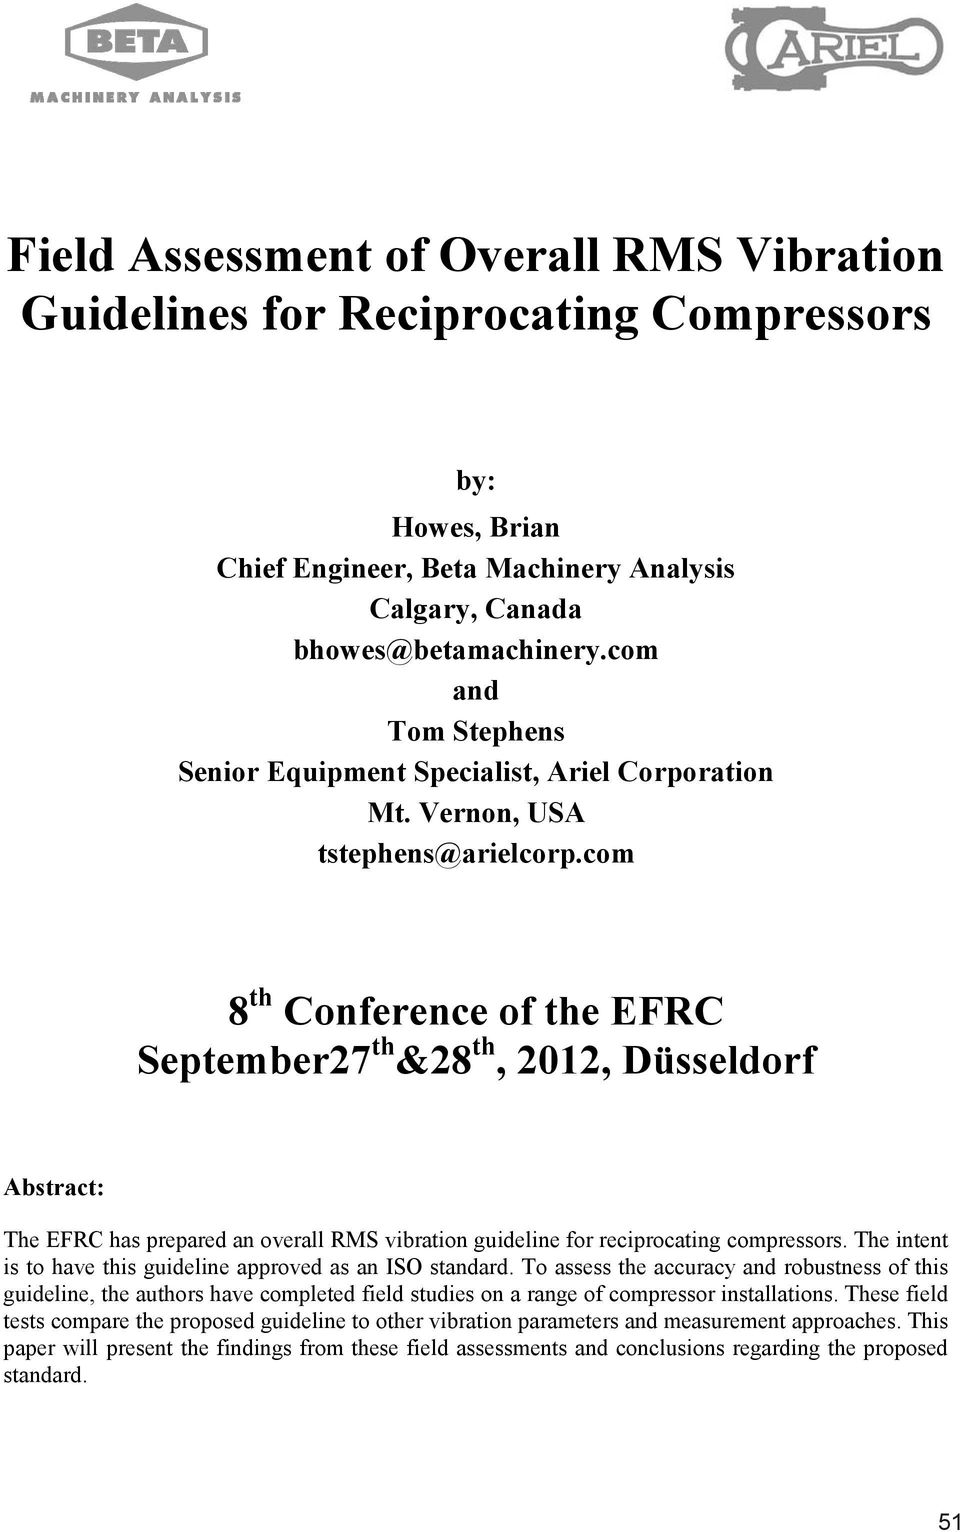 com September27th&28th, 2012, Düsseldorf The EFRC has prepared an overall RMS vibration guideline for reciprocating compressors. The intent is to have this guideline approved as an ISO standard.